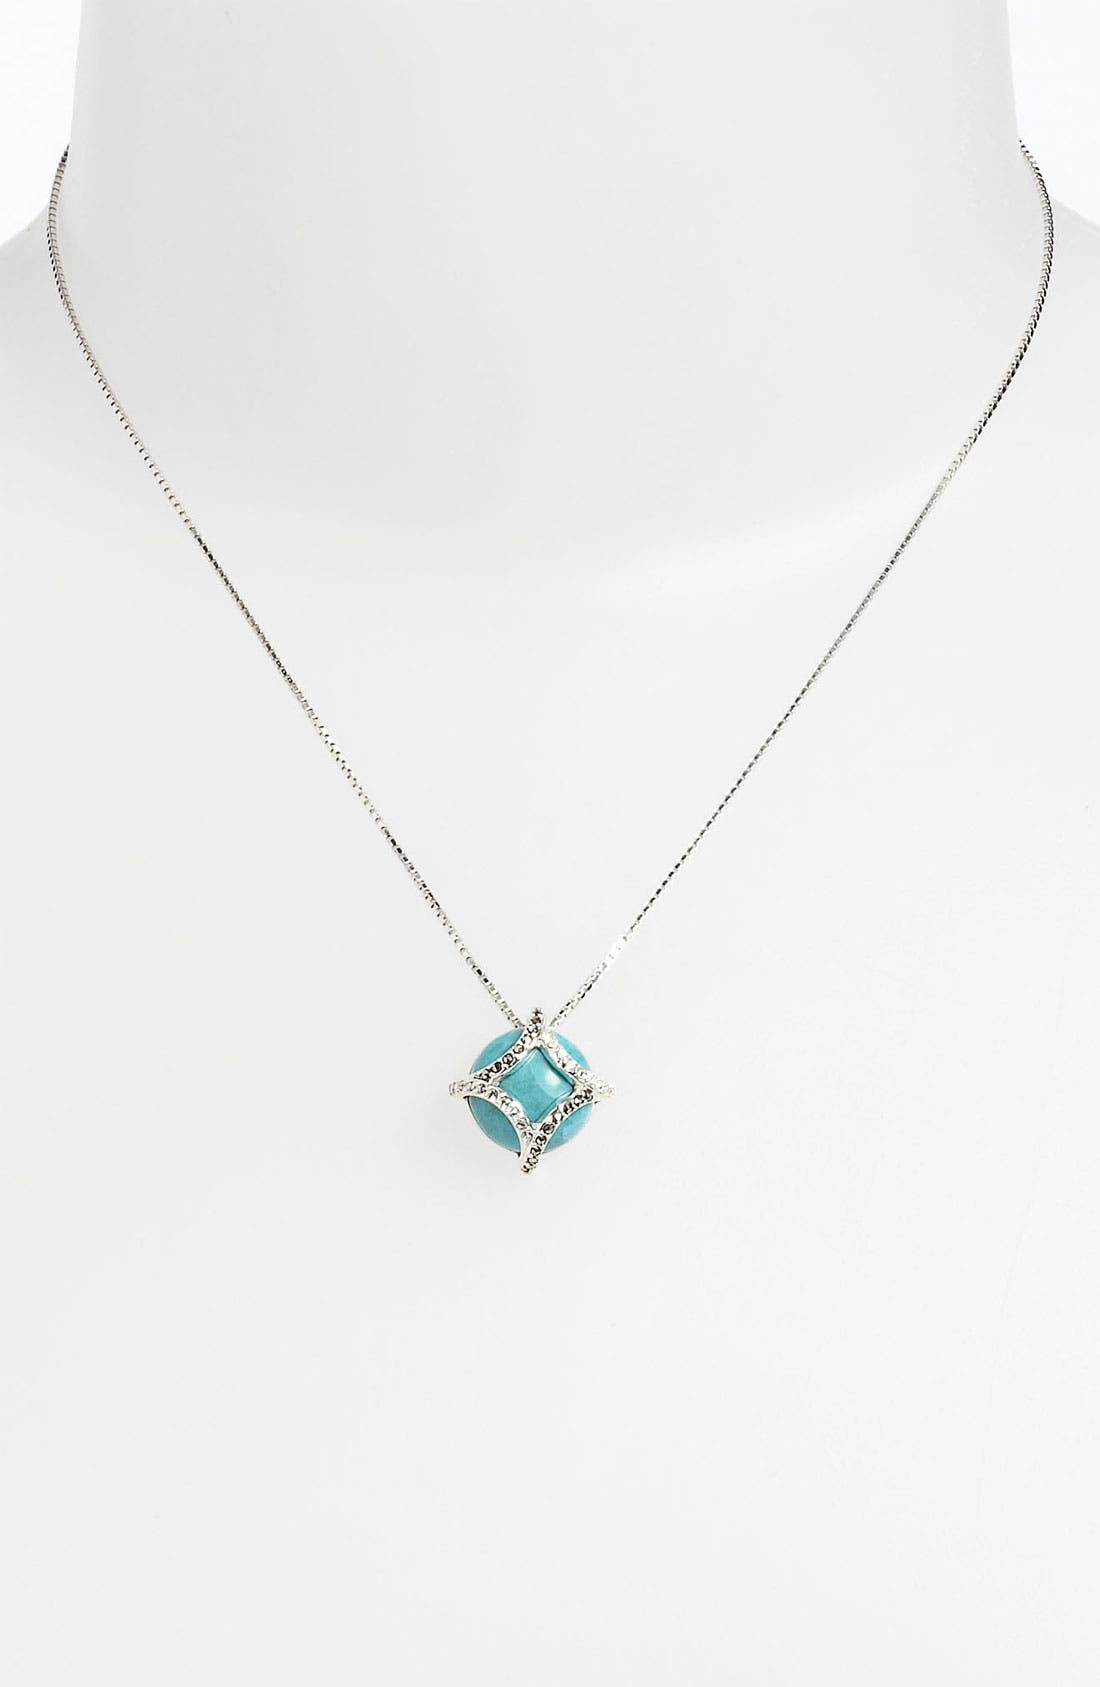 Alternate Image 1 Selected - Judith Jack 'Turq Matrix' Small Pendant Necklace